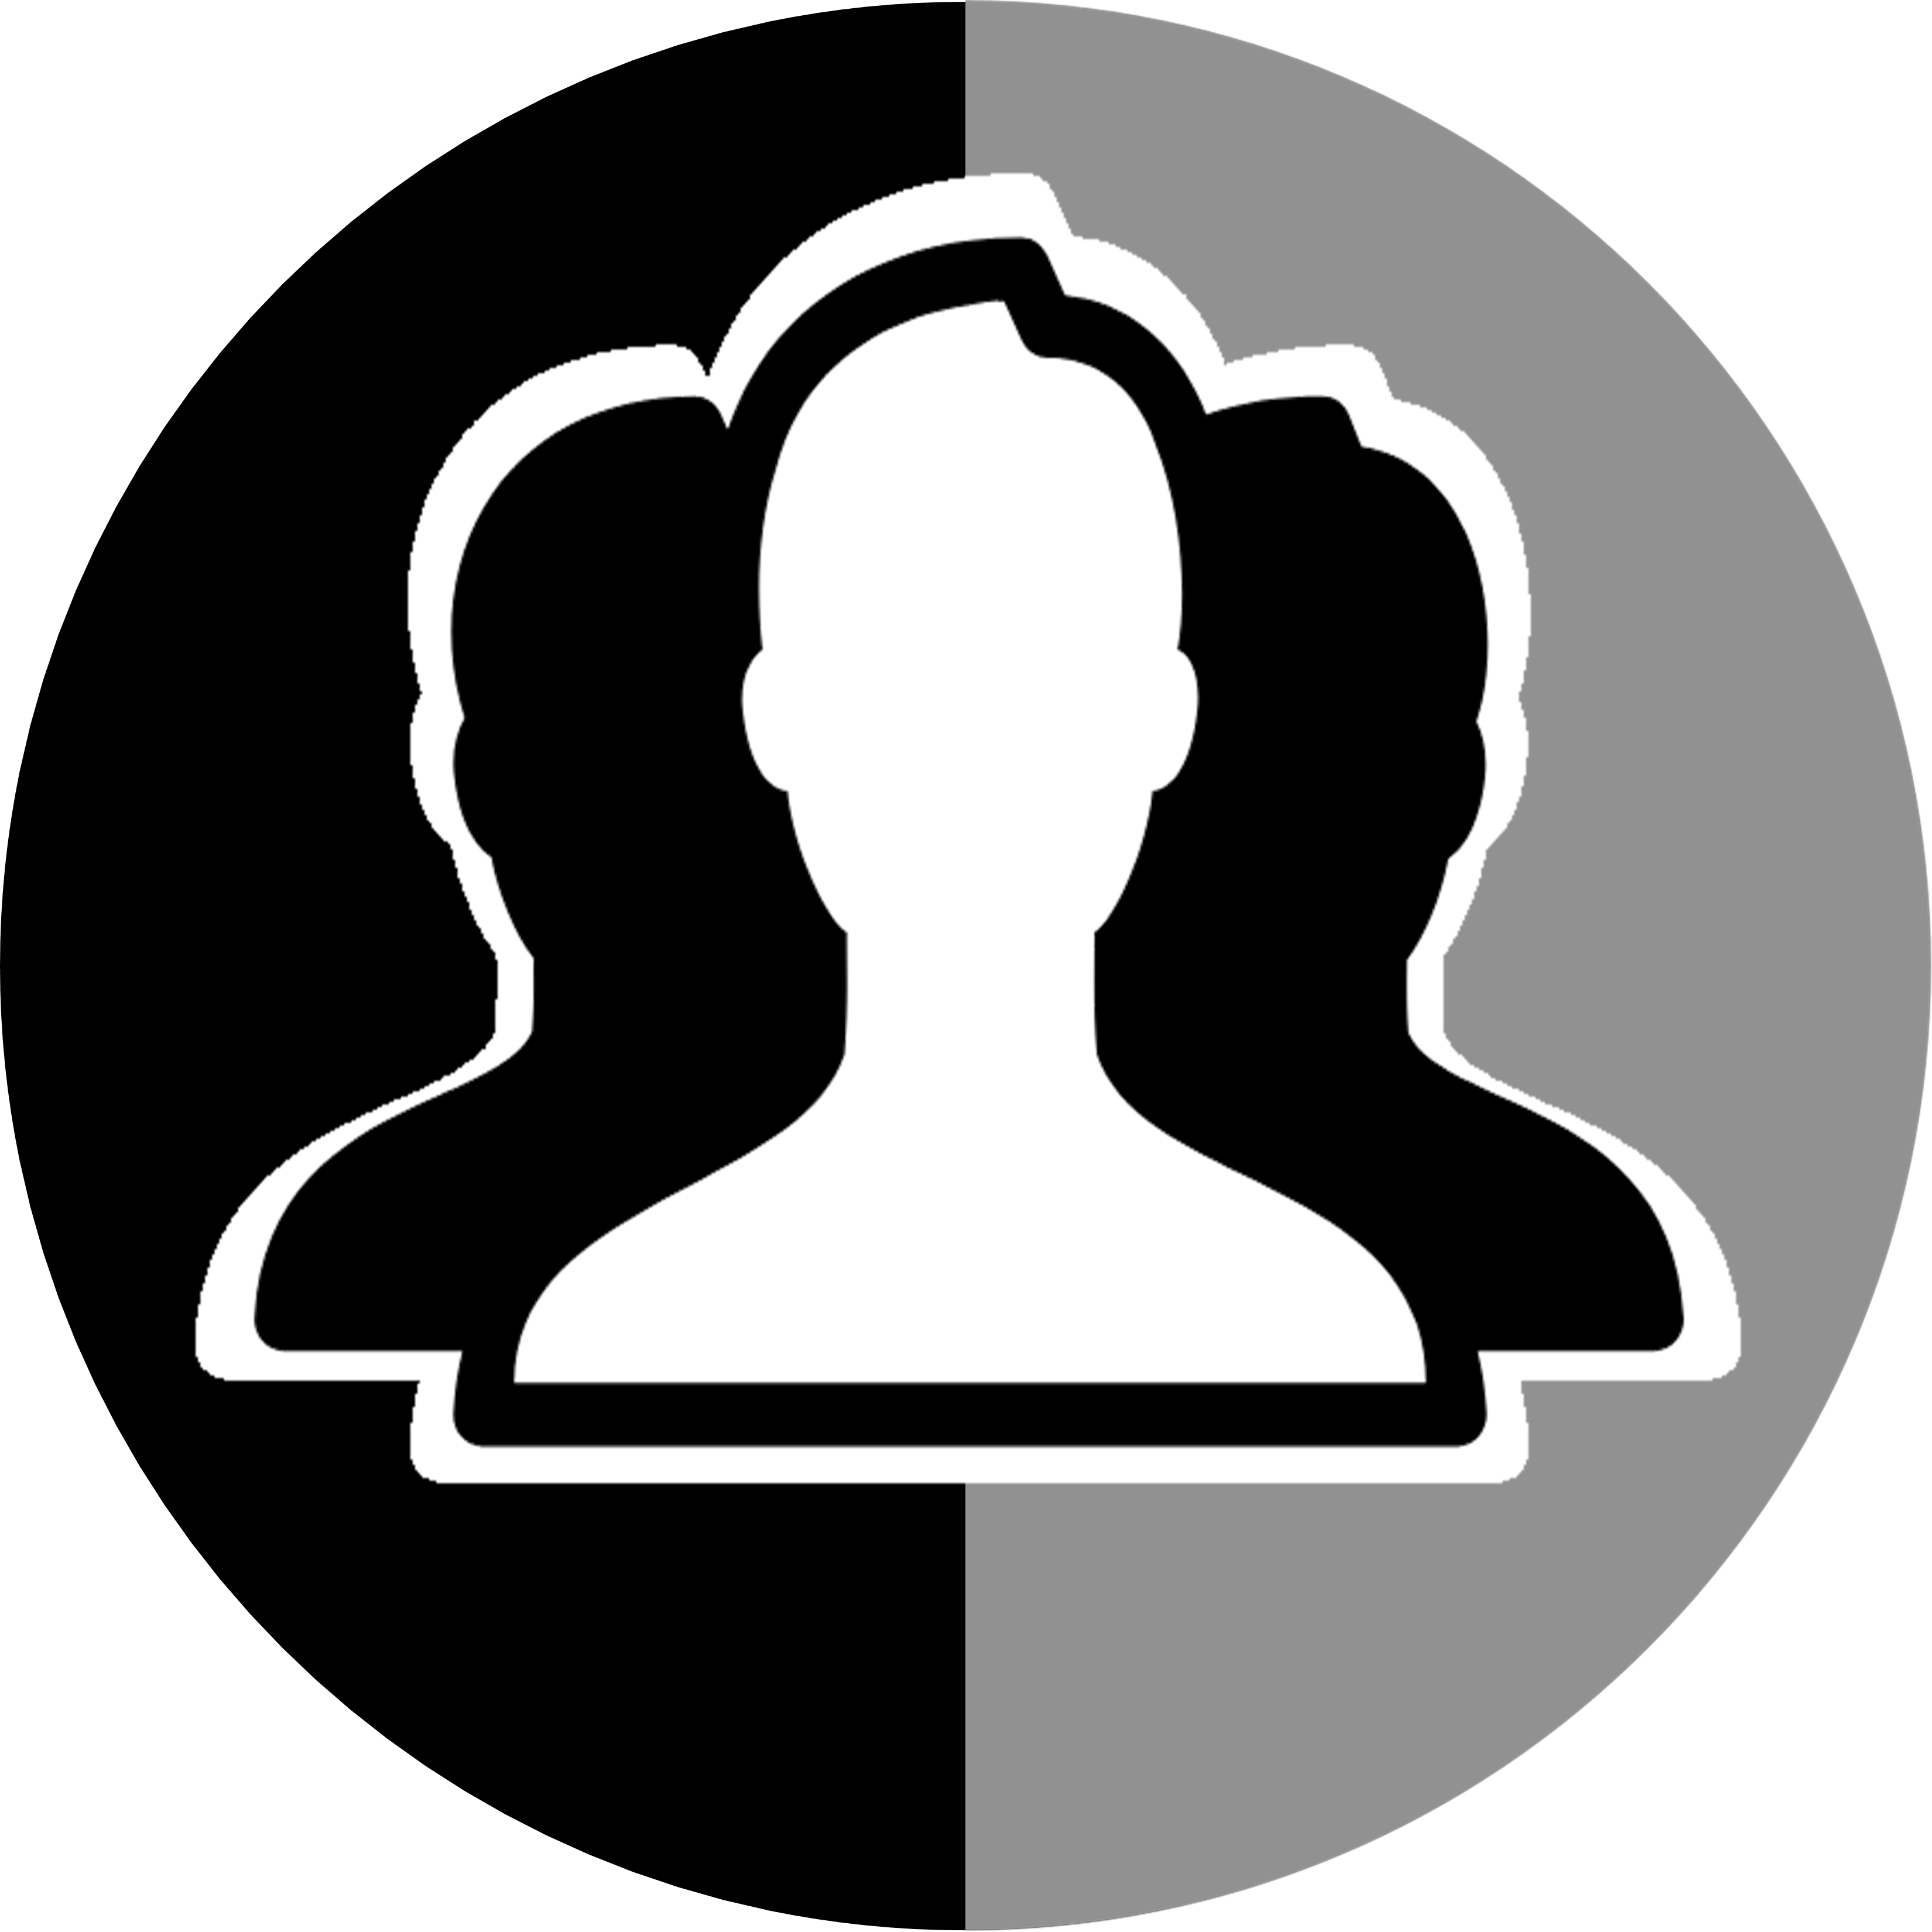 Icon About Us 300dpi 1